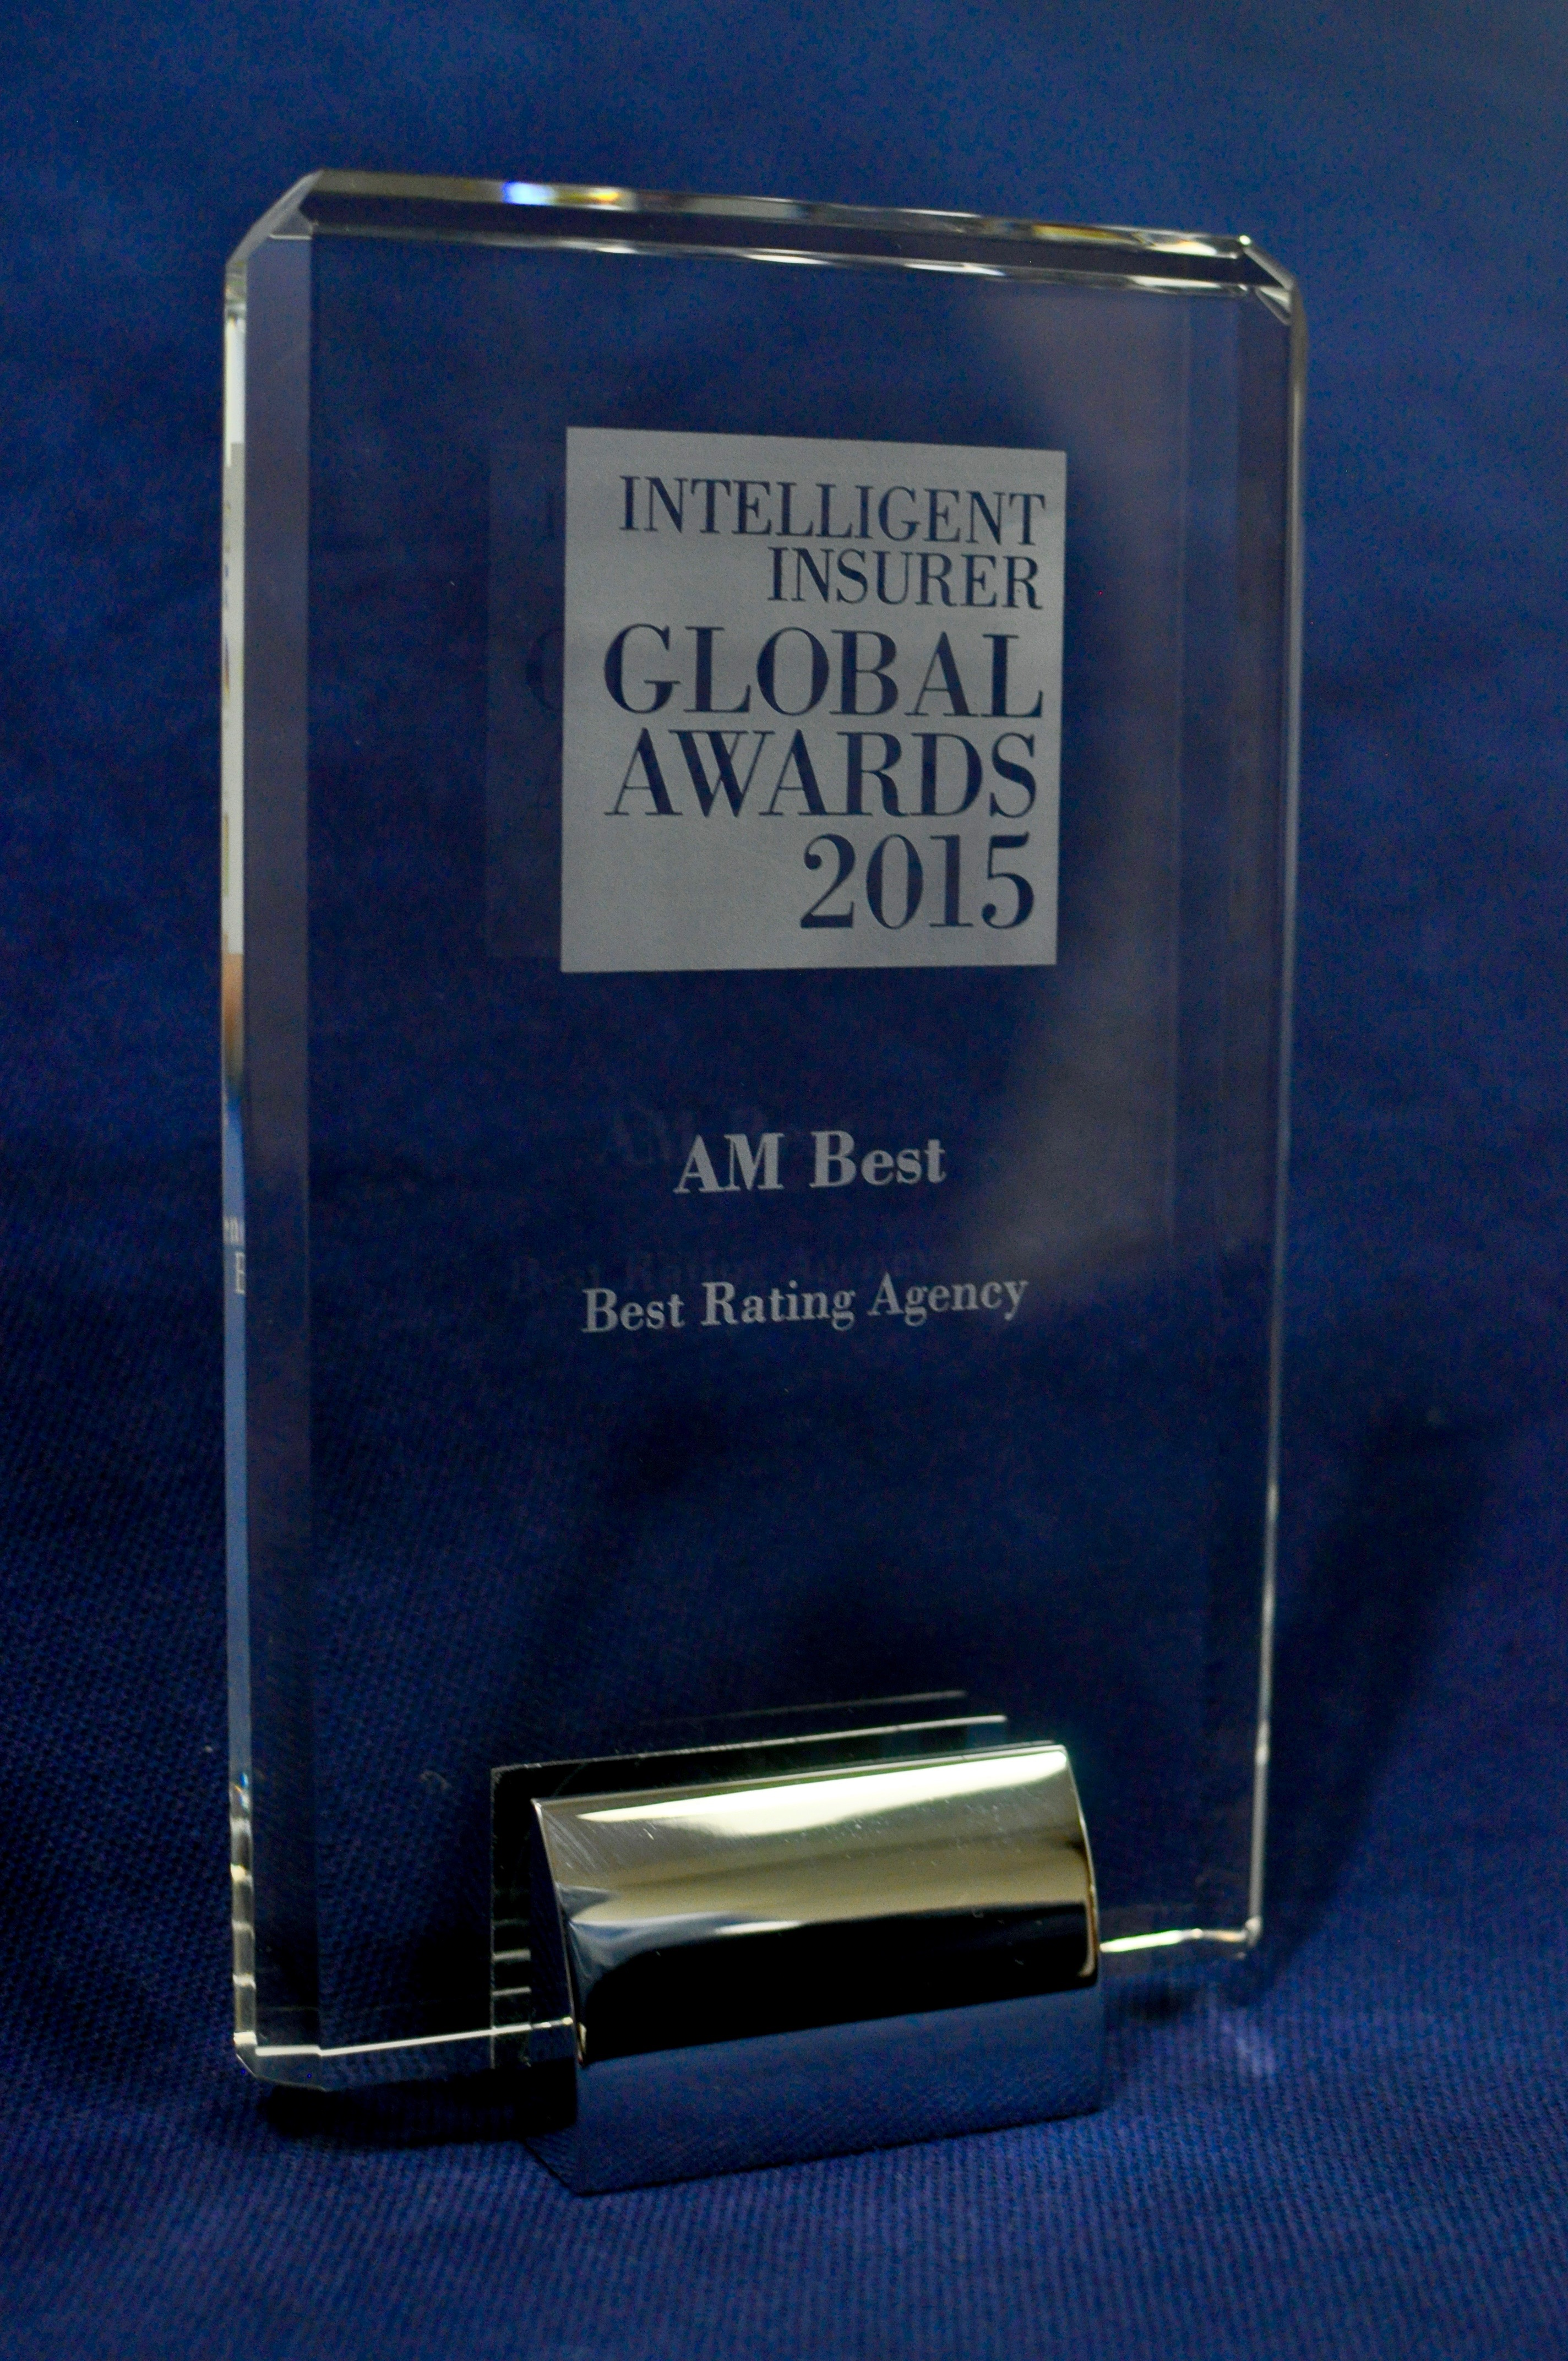 Security first insurance am best rating